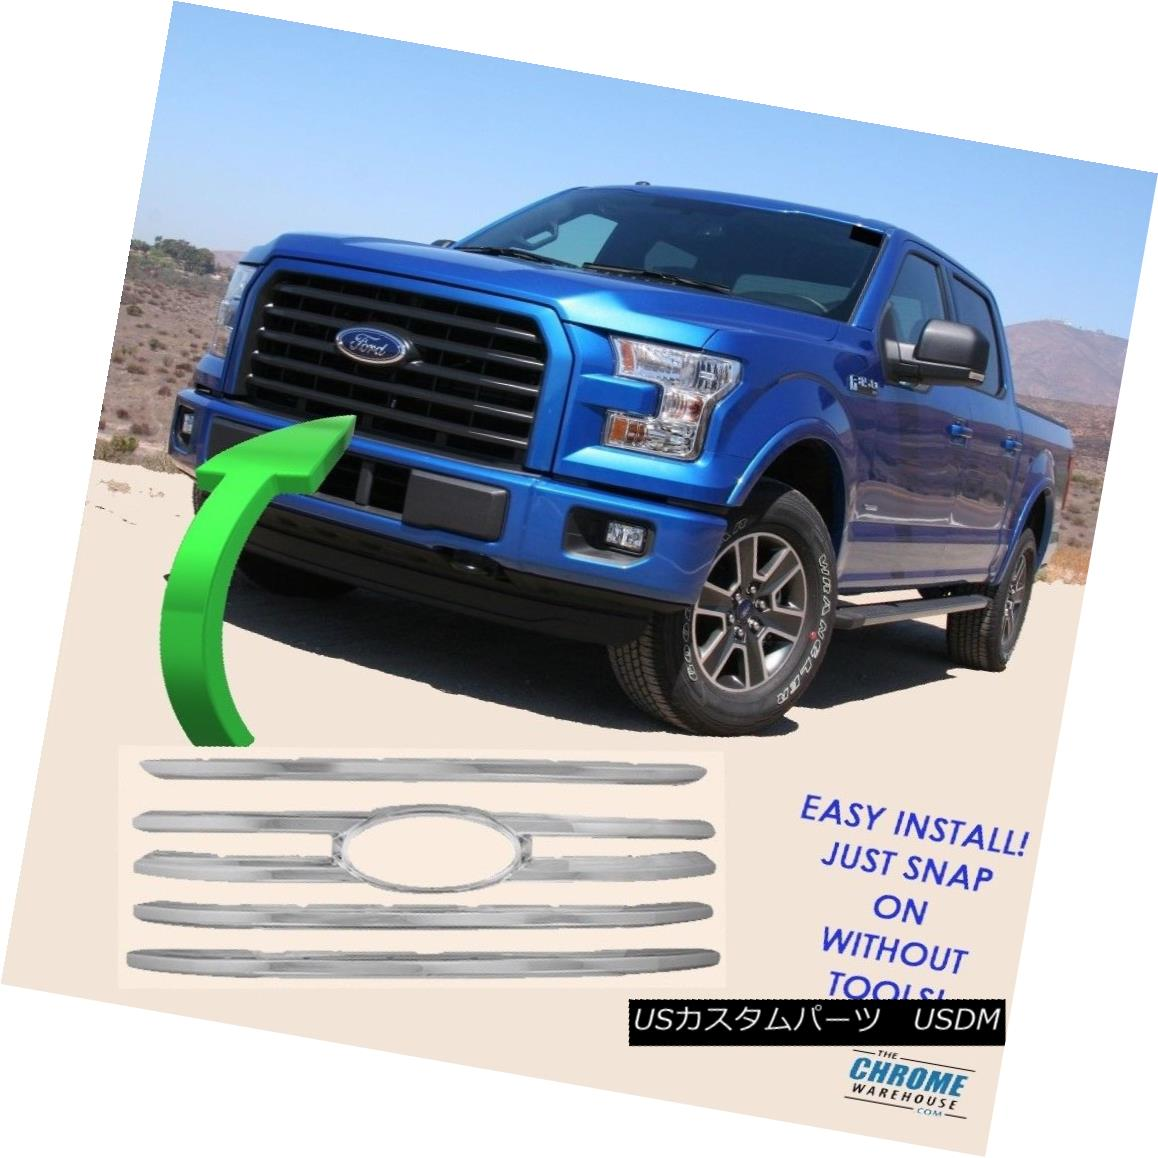 グリル Fits 2015 Ford F150 XLT-Chrome Grille Overlay 2015 Ford F150 XLT-Chromeグリルオーバーレイに適合